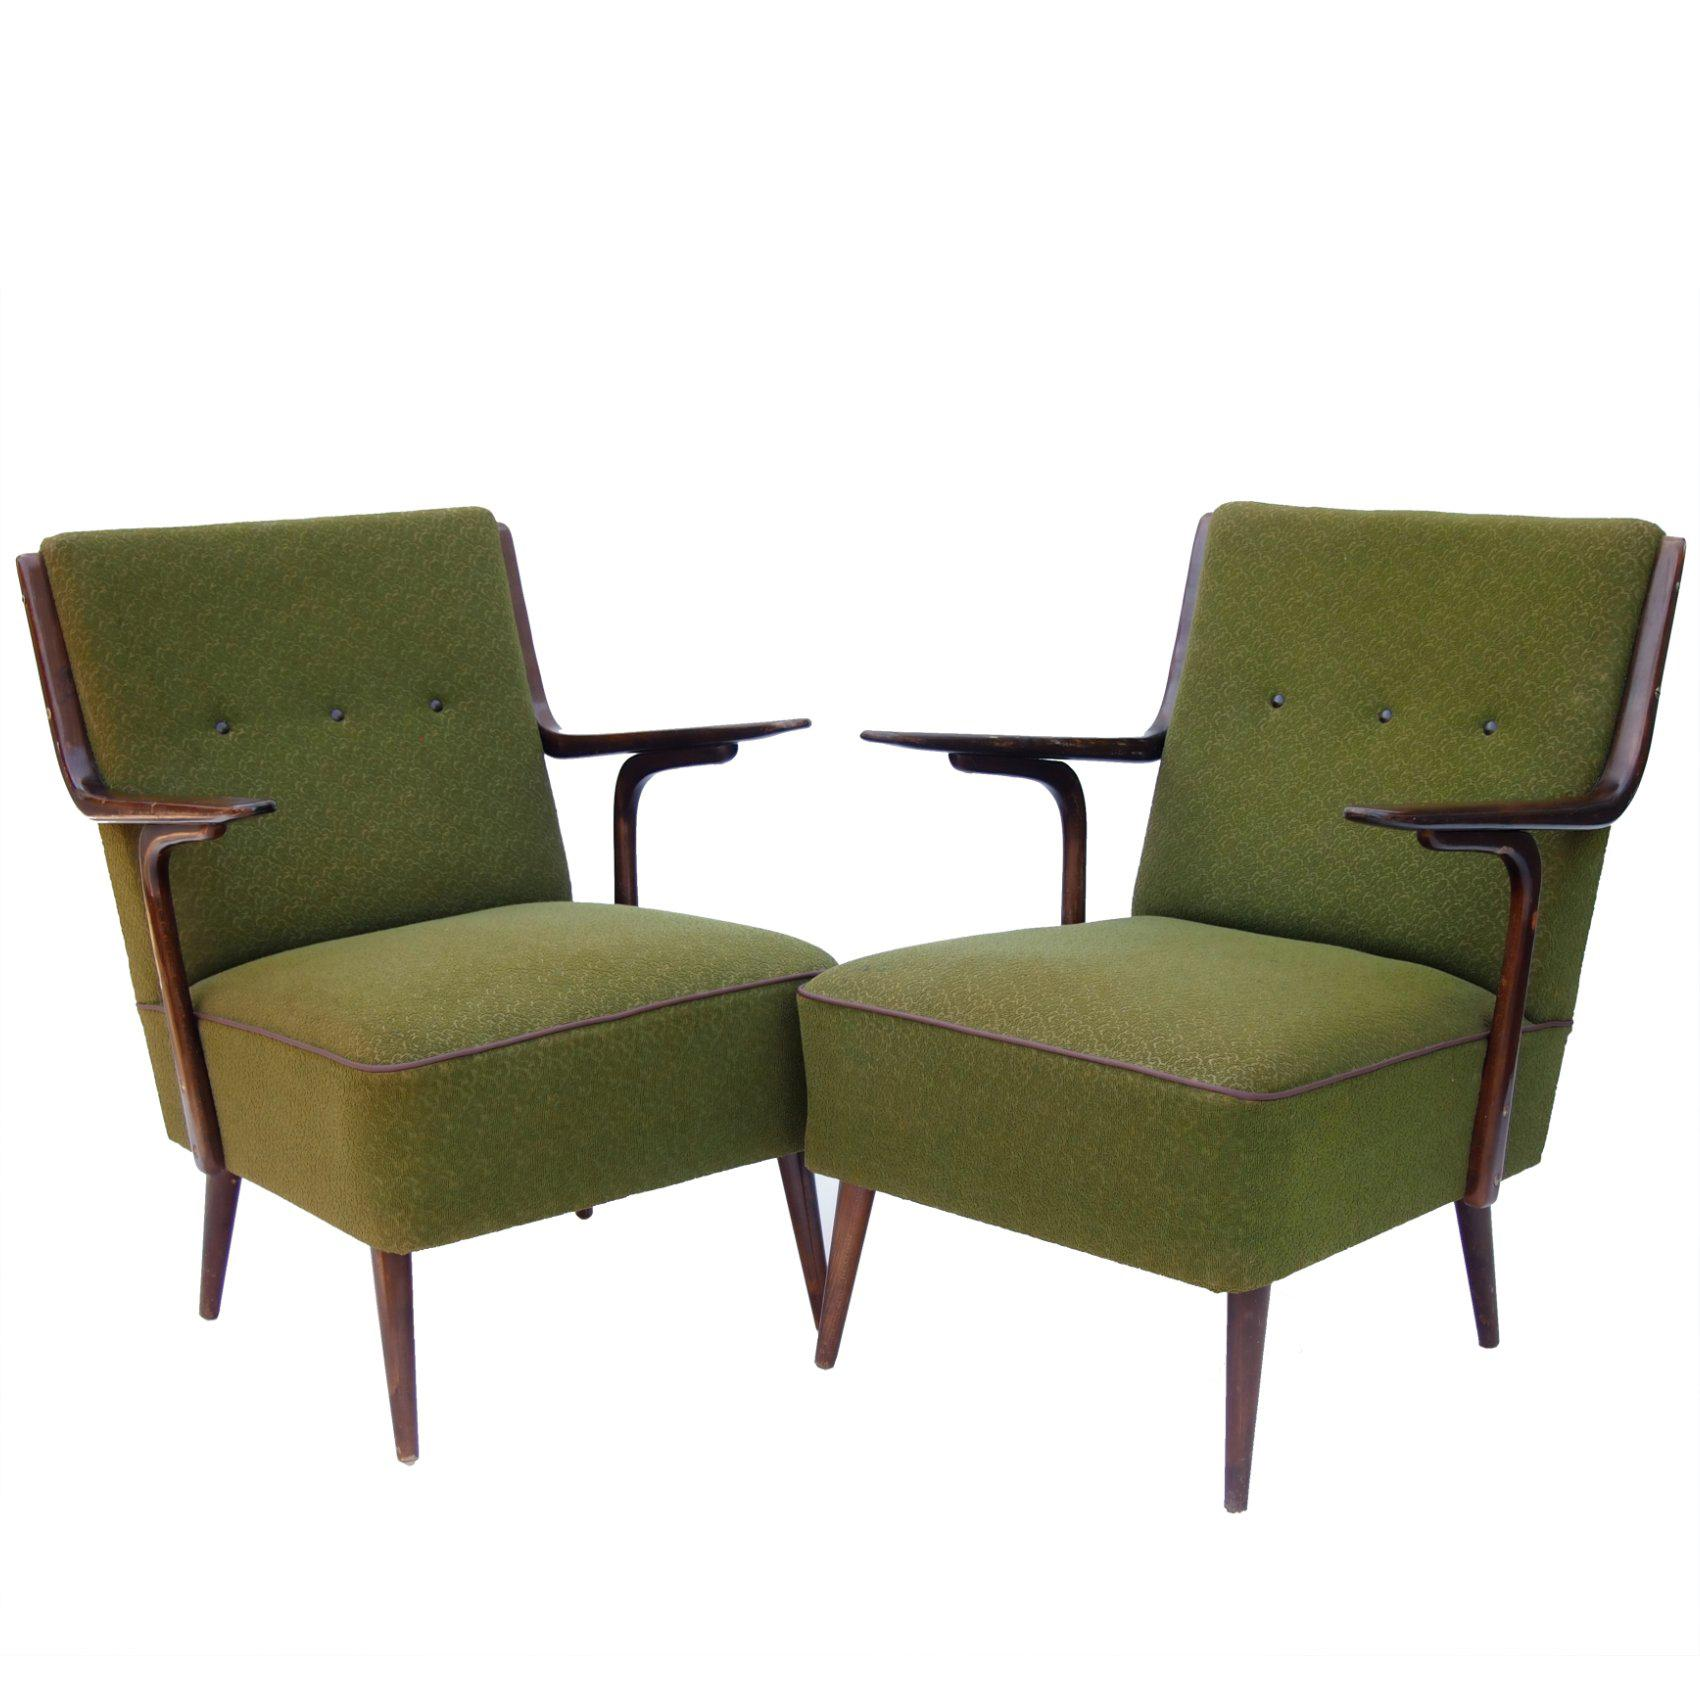 Pair of Art Deco Bentwood Armchairs, 1930s